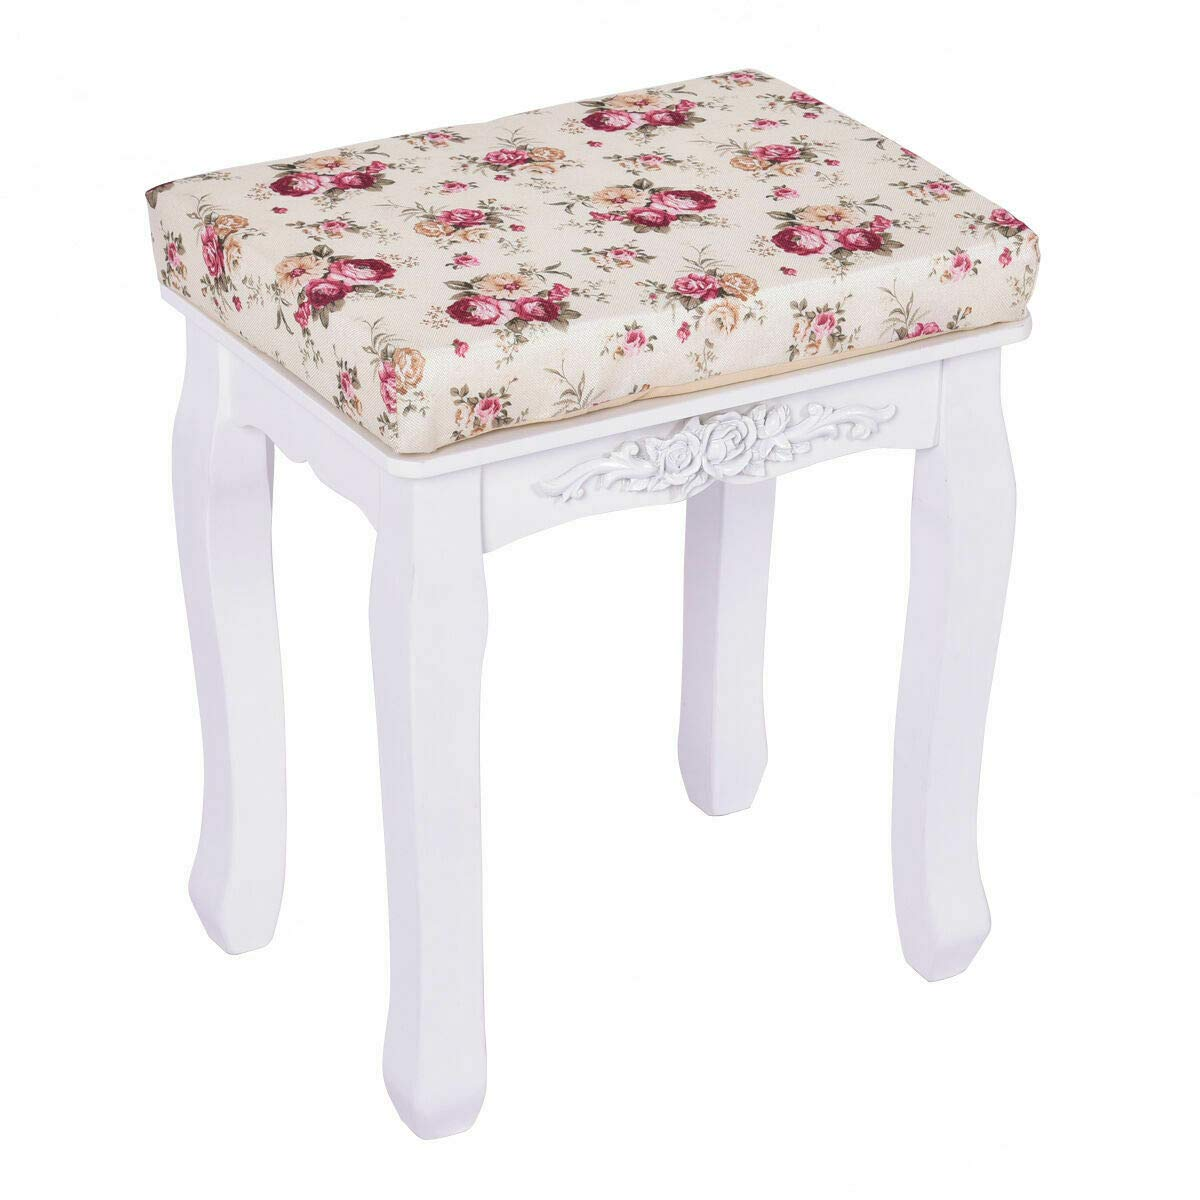 Adumly White Vanity Wood Dressing Stool Padded Chair Makeup Piano Seat with Cushion